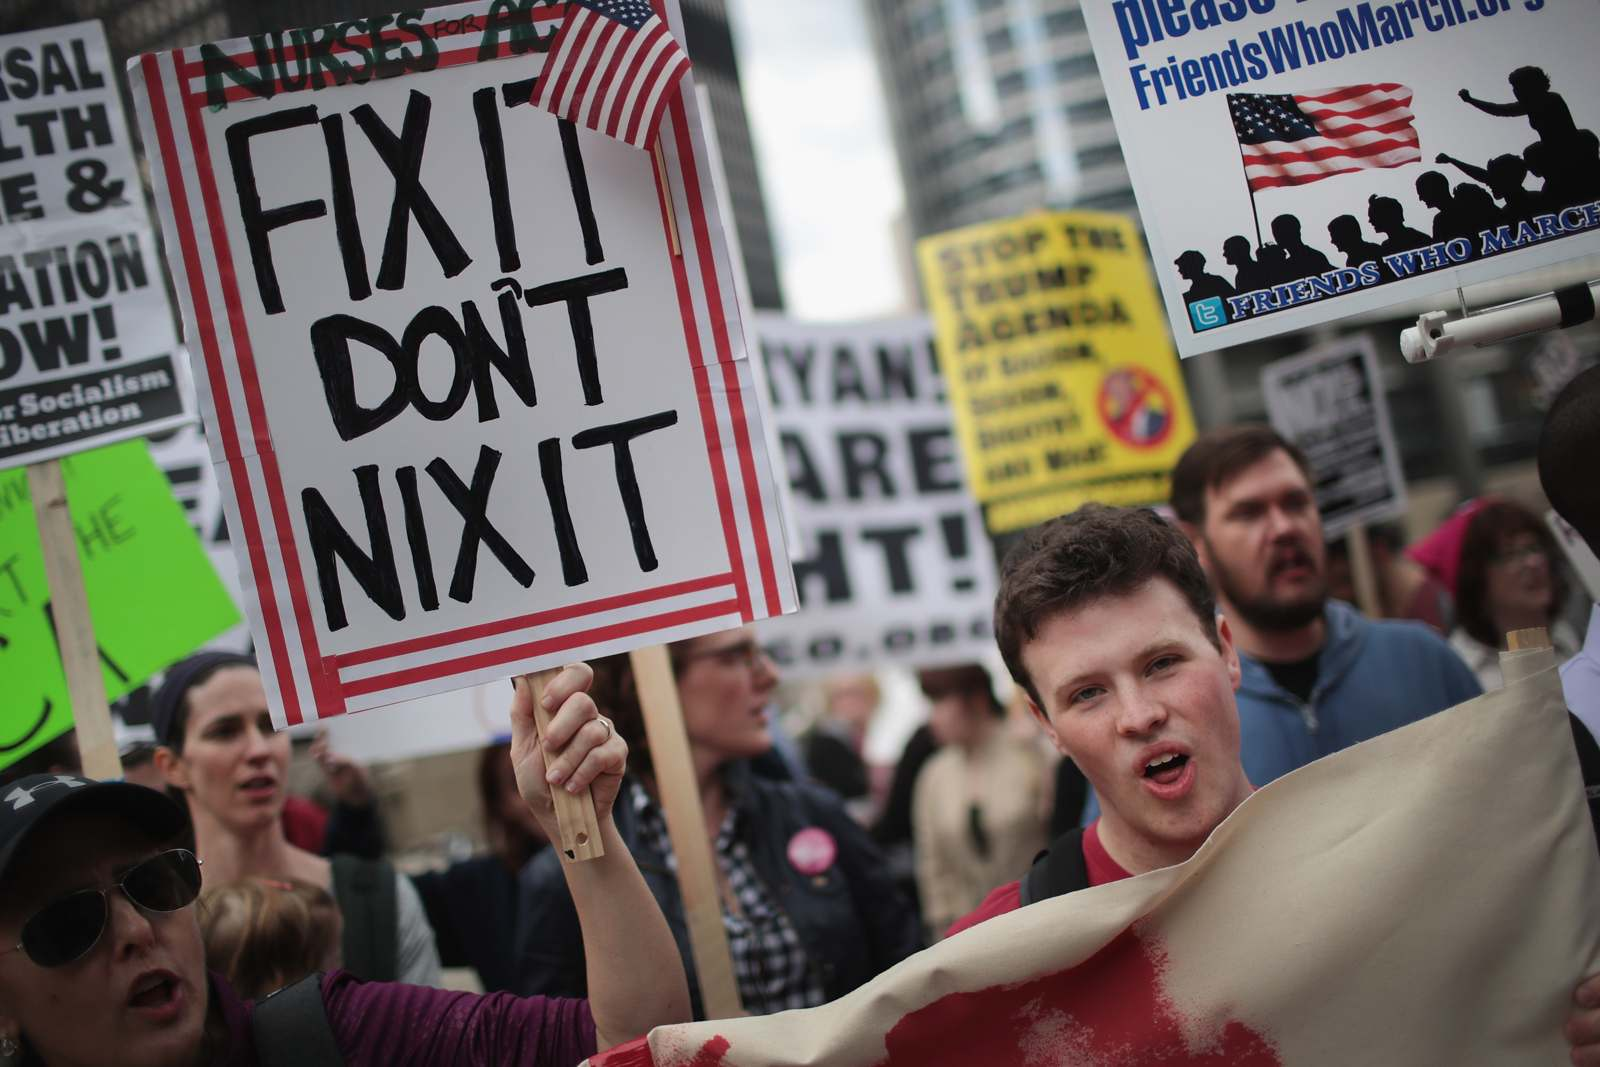 Demonstrators gather near Trump Tower in Chicago to celebrate the defeat of President Donald Trump's revision of the Affordable Care Act March 24, 2017. (Scott Olson/Getty Images)